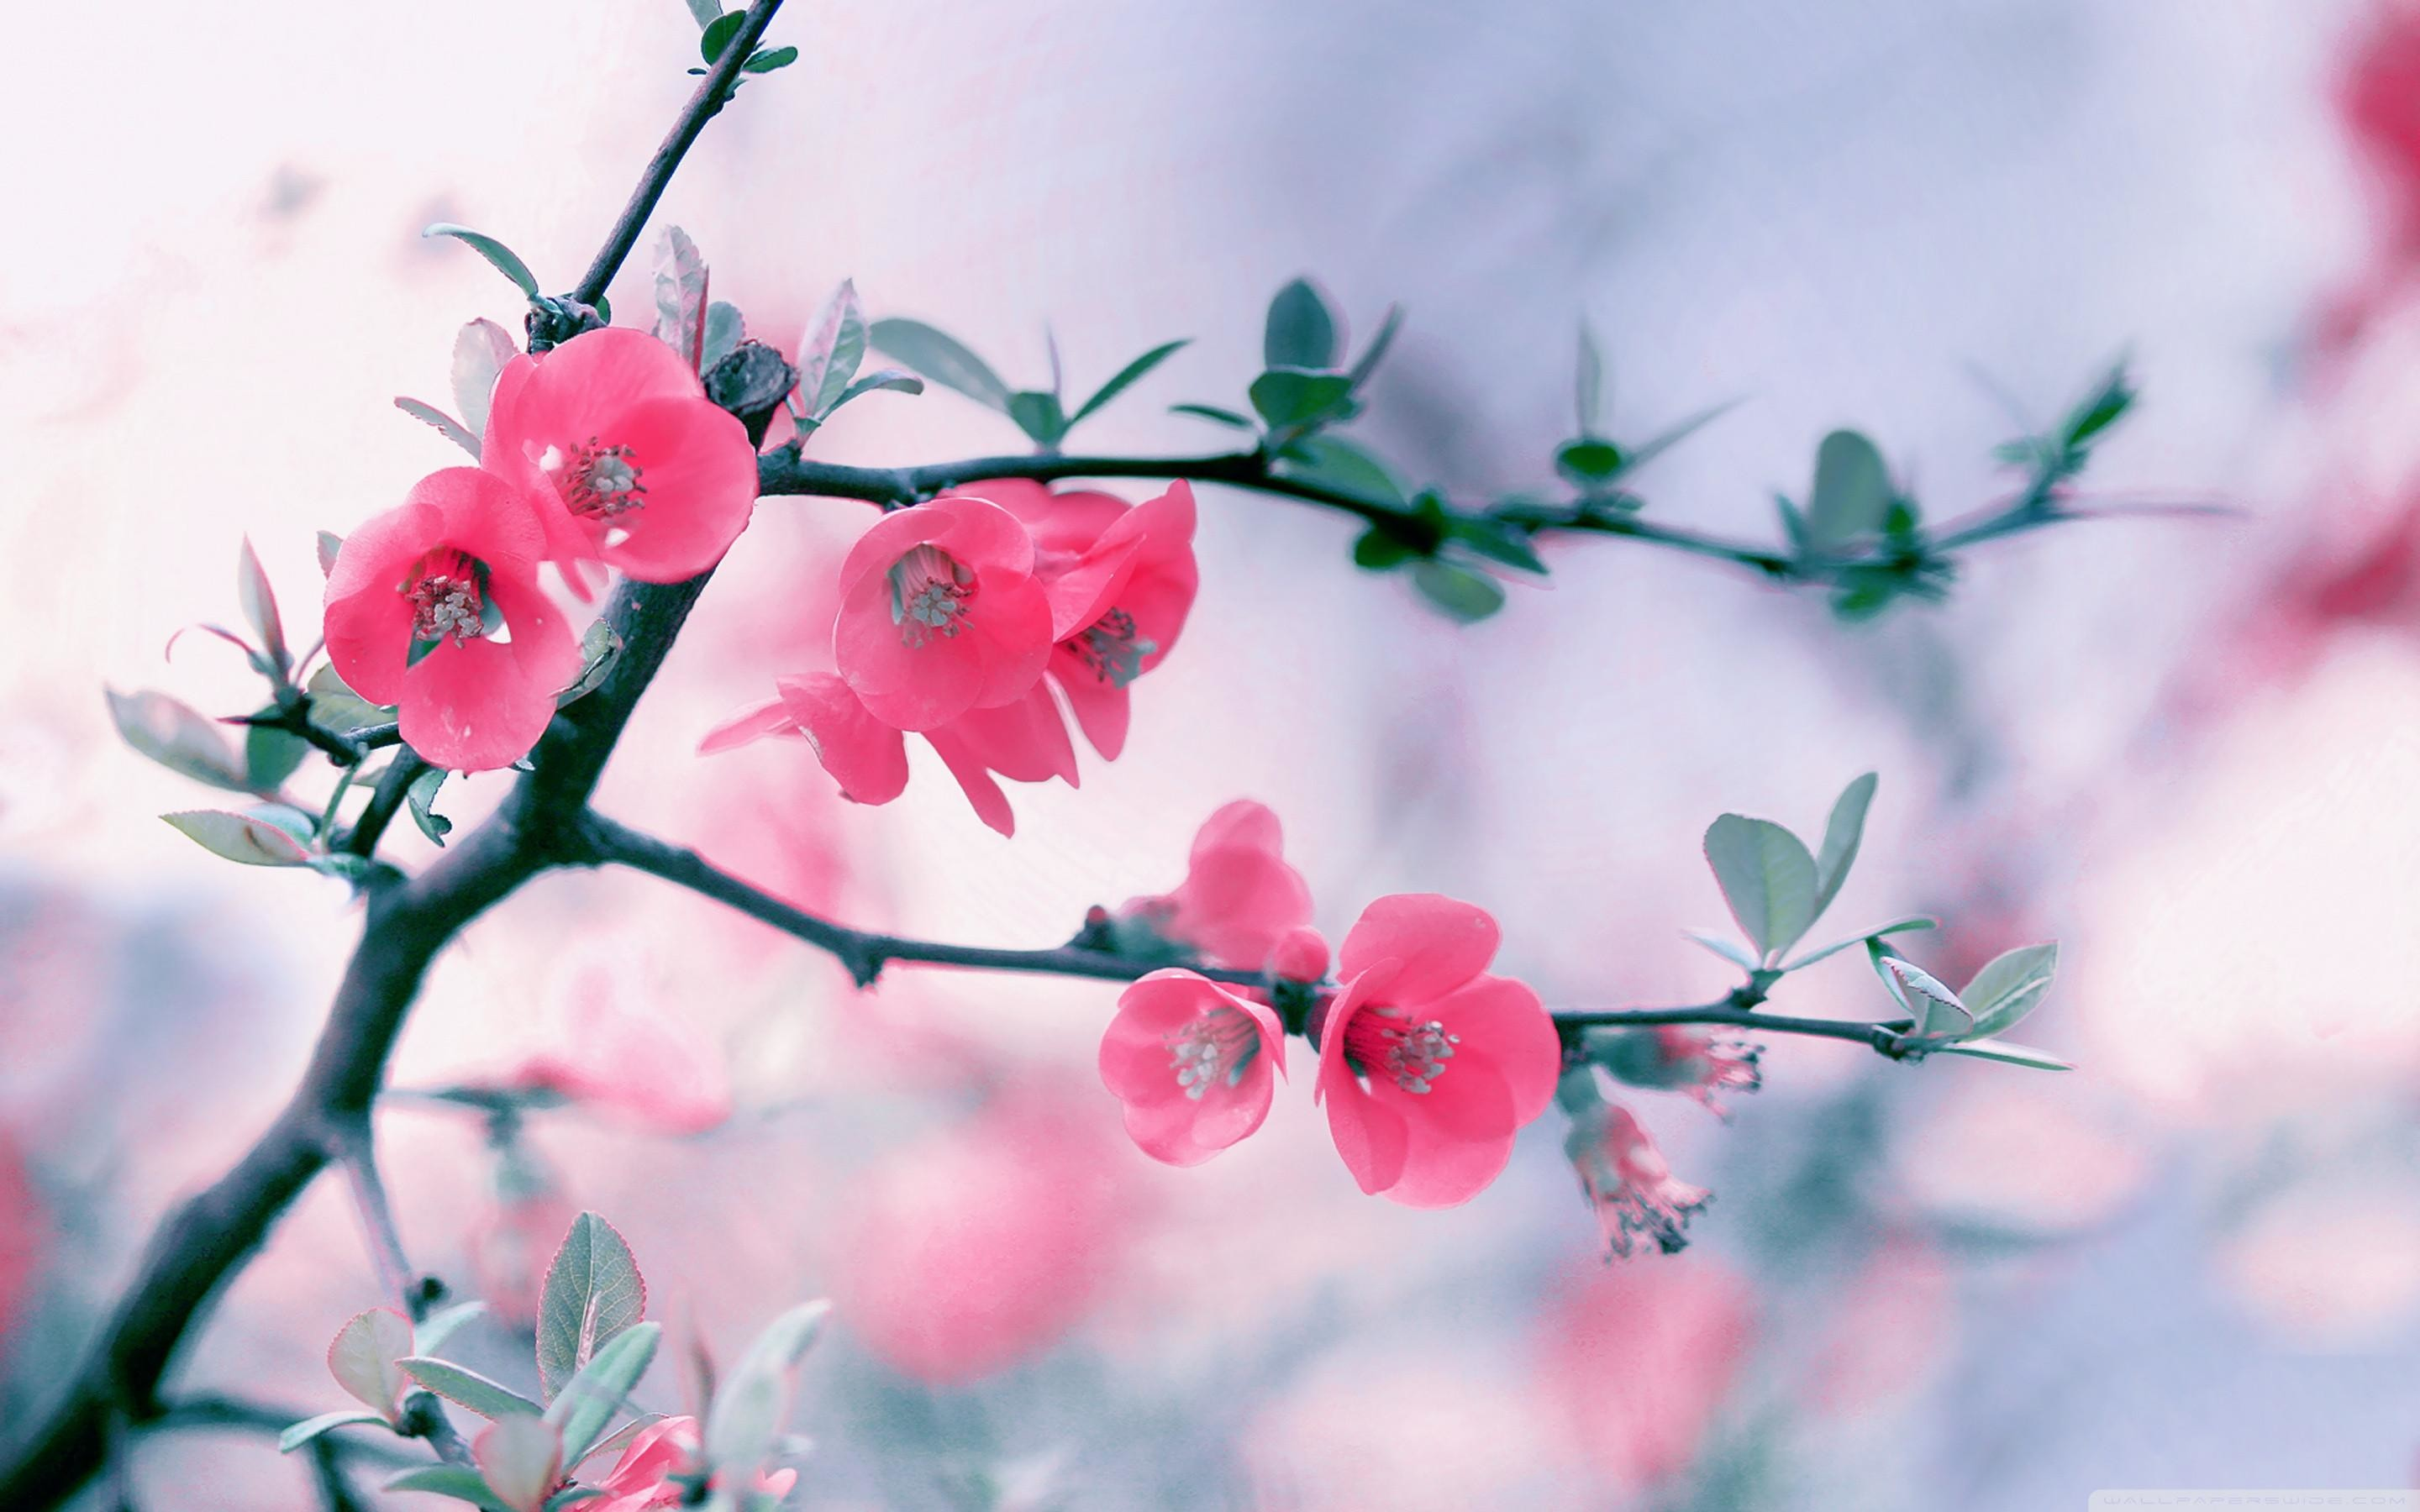 Pictures Of Flowers For Desktop Background